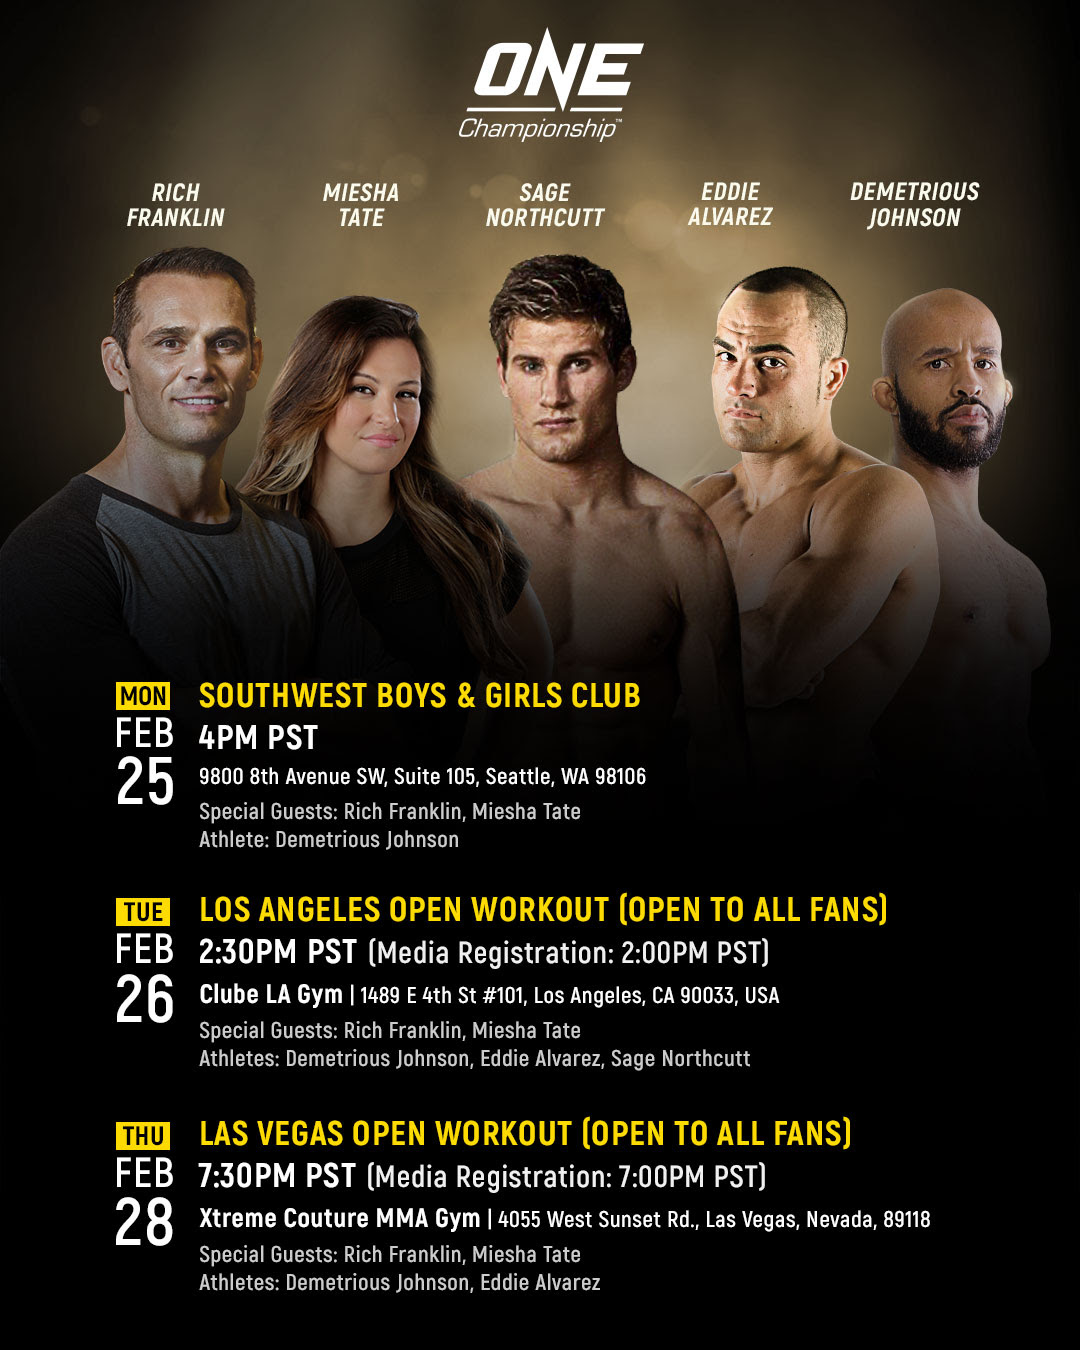 RICH FRANKLIN AND MIESHA TATE TO JOIN ONE CHAMPIONSHIP US MEDIA TOUR -